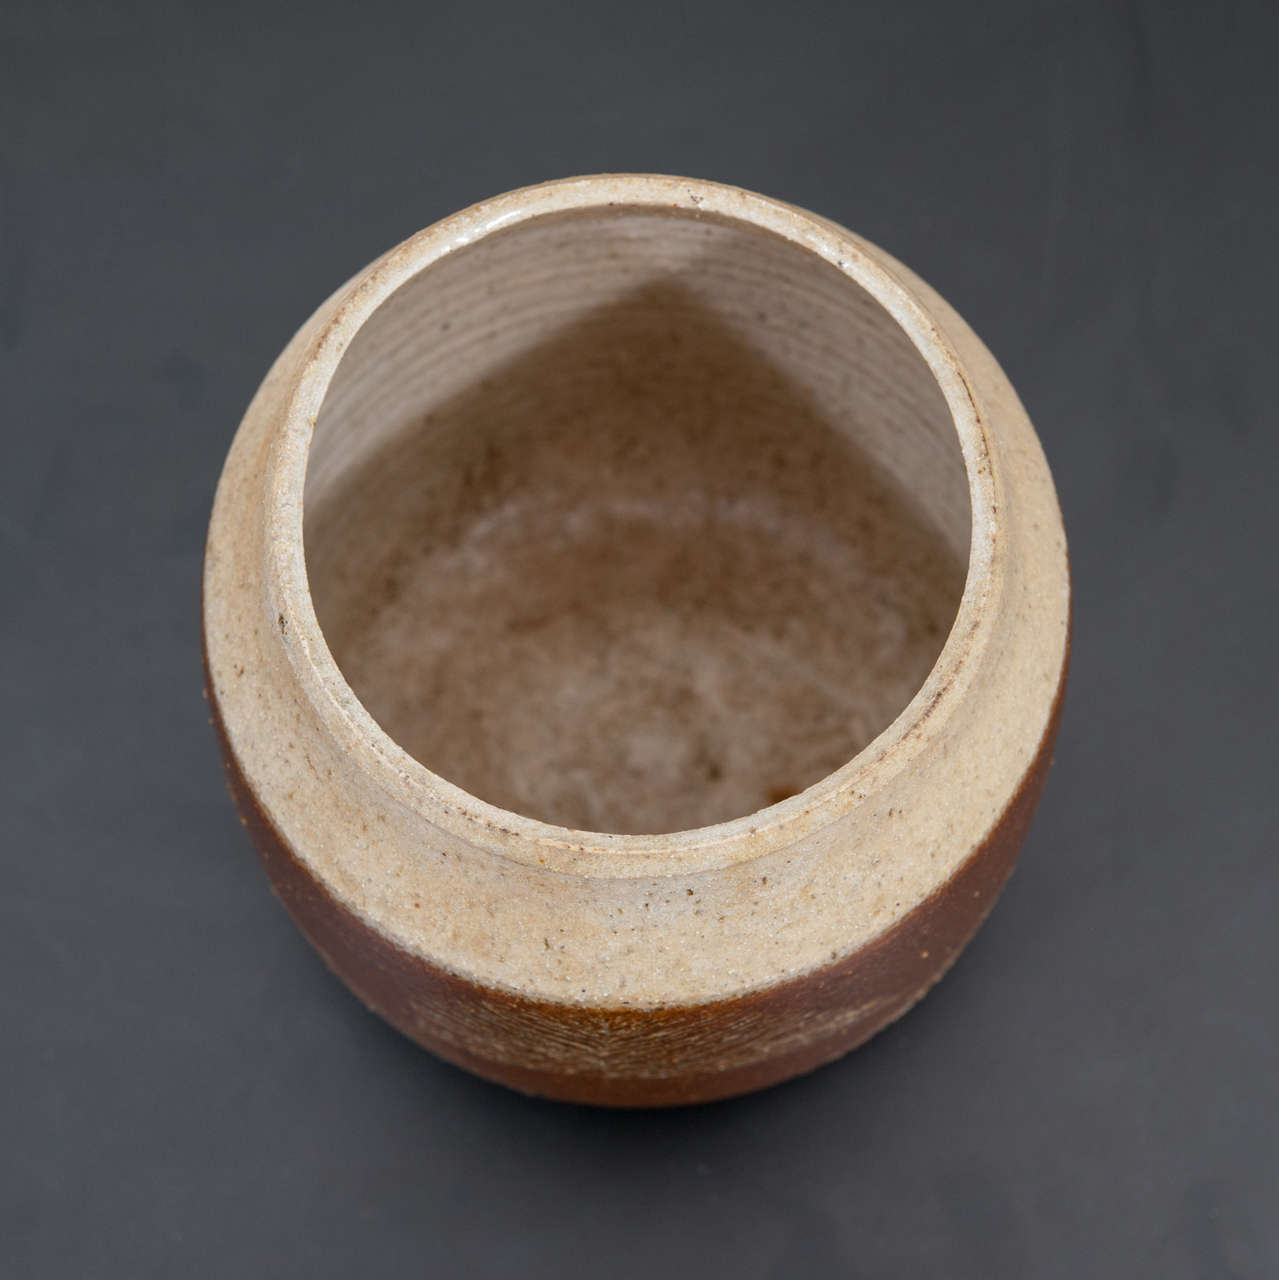 Hald Soon Pottery Vase 6